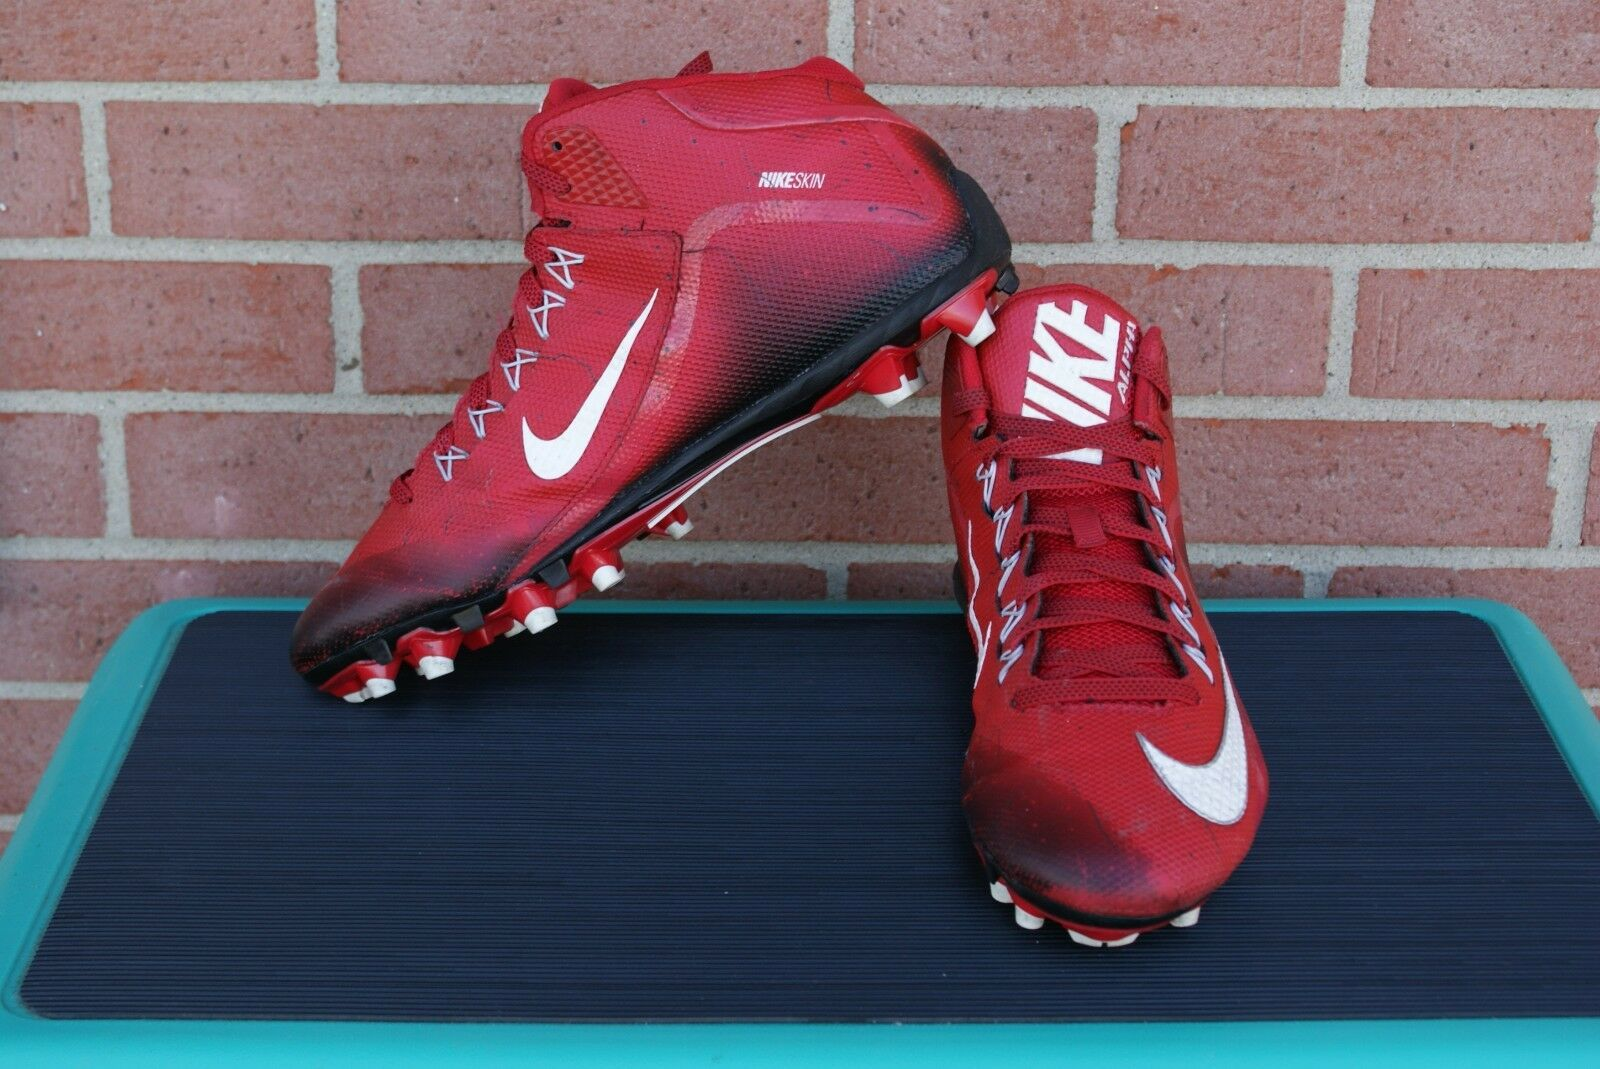 Nike Alpha Men's Red/Black/White Football Cleats Size 13